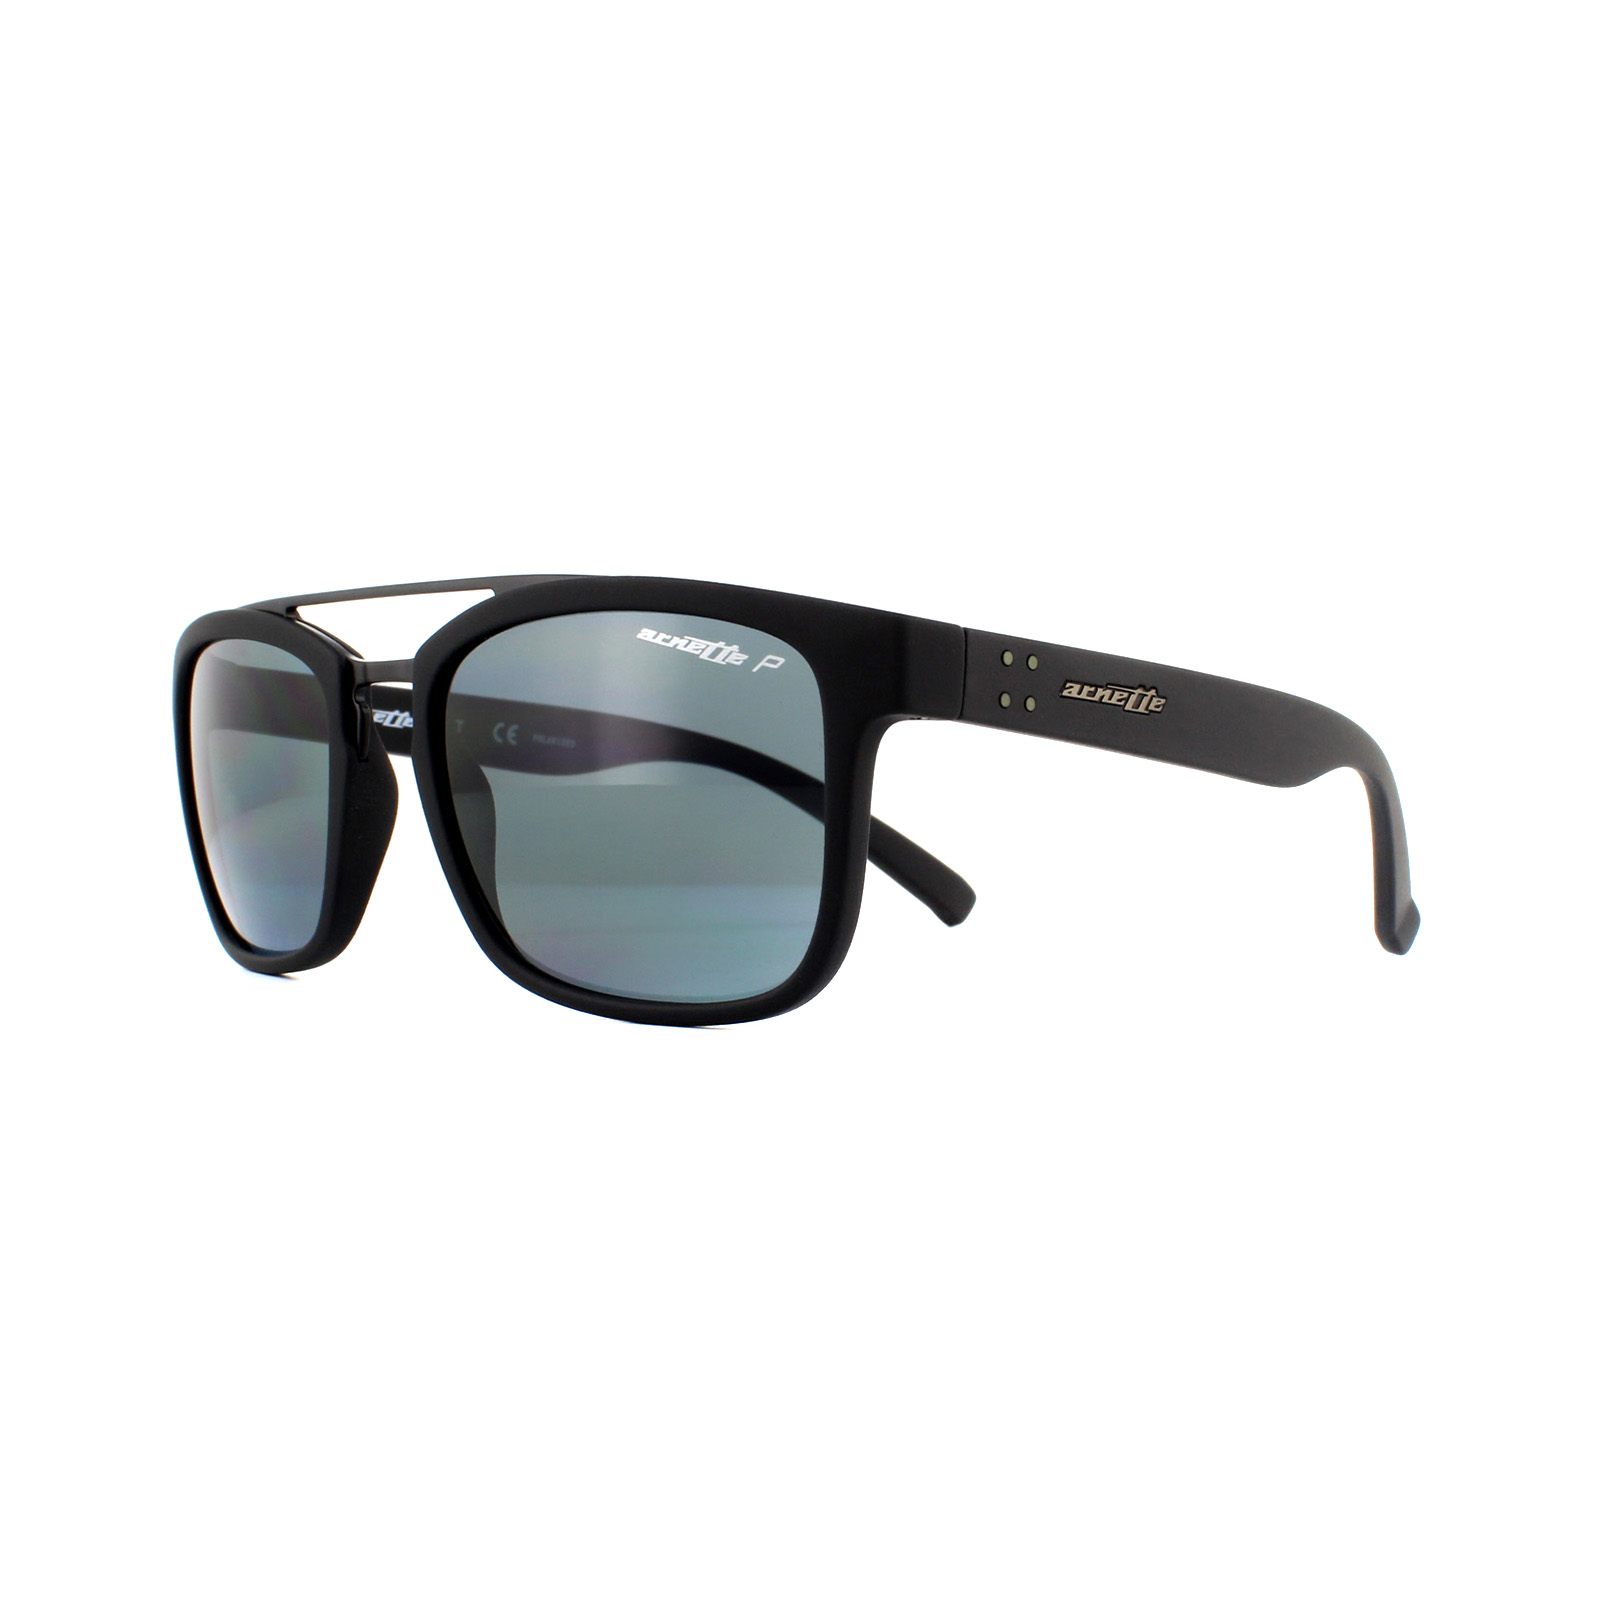 89a690e8e2434 Sentinel Arnette Sunglasses Baller 4248 254181 Black Polarized Grey